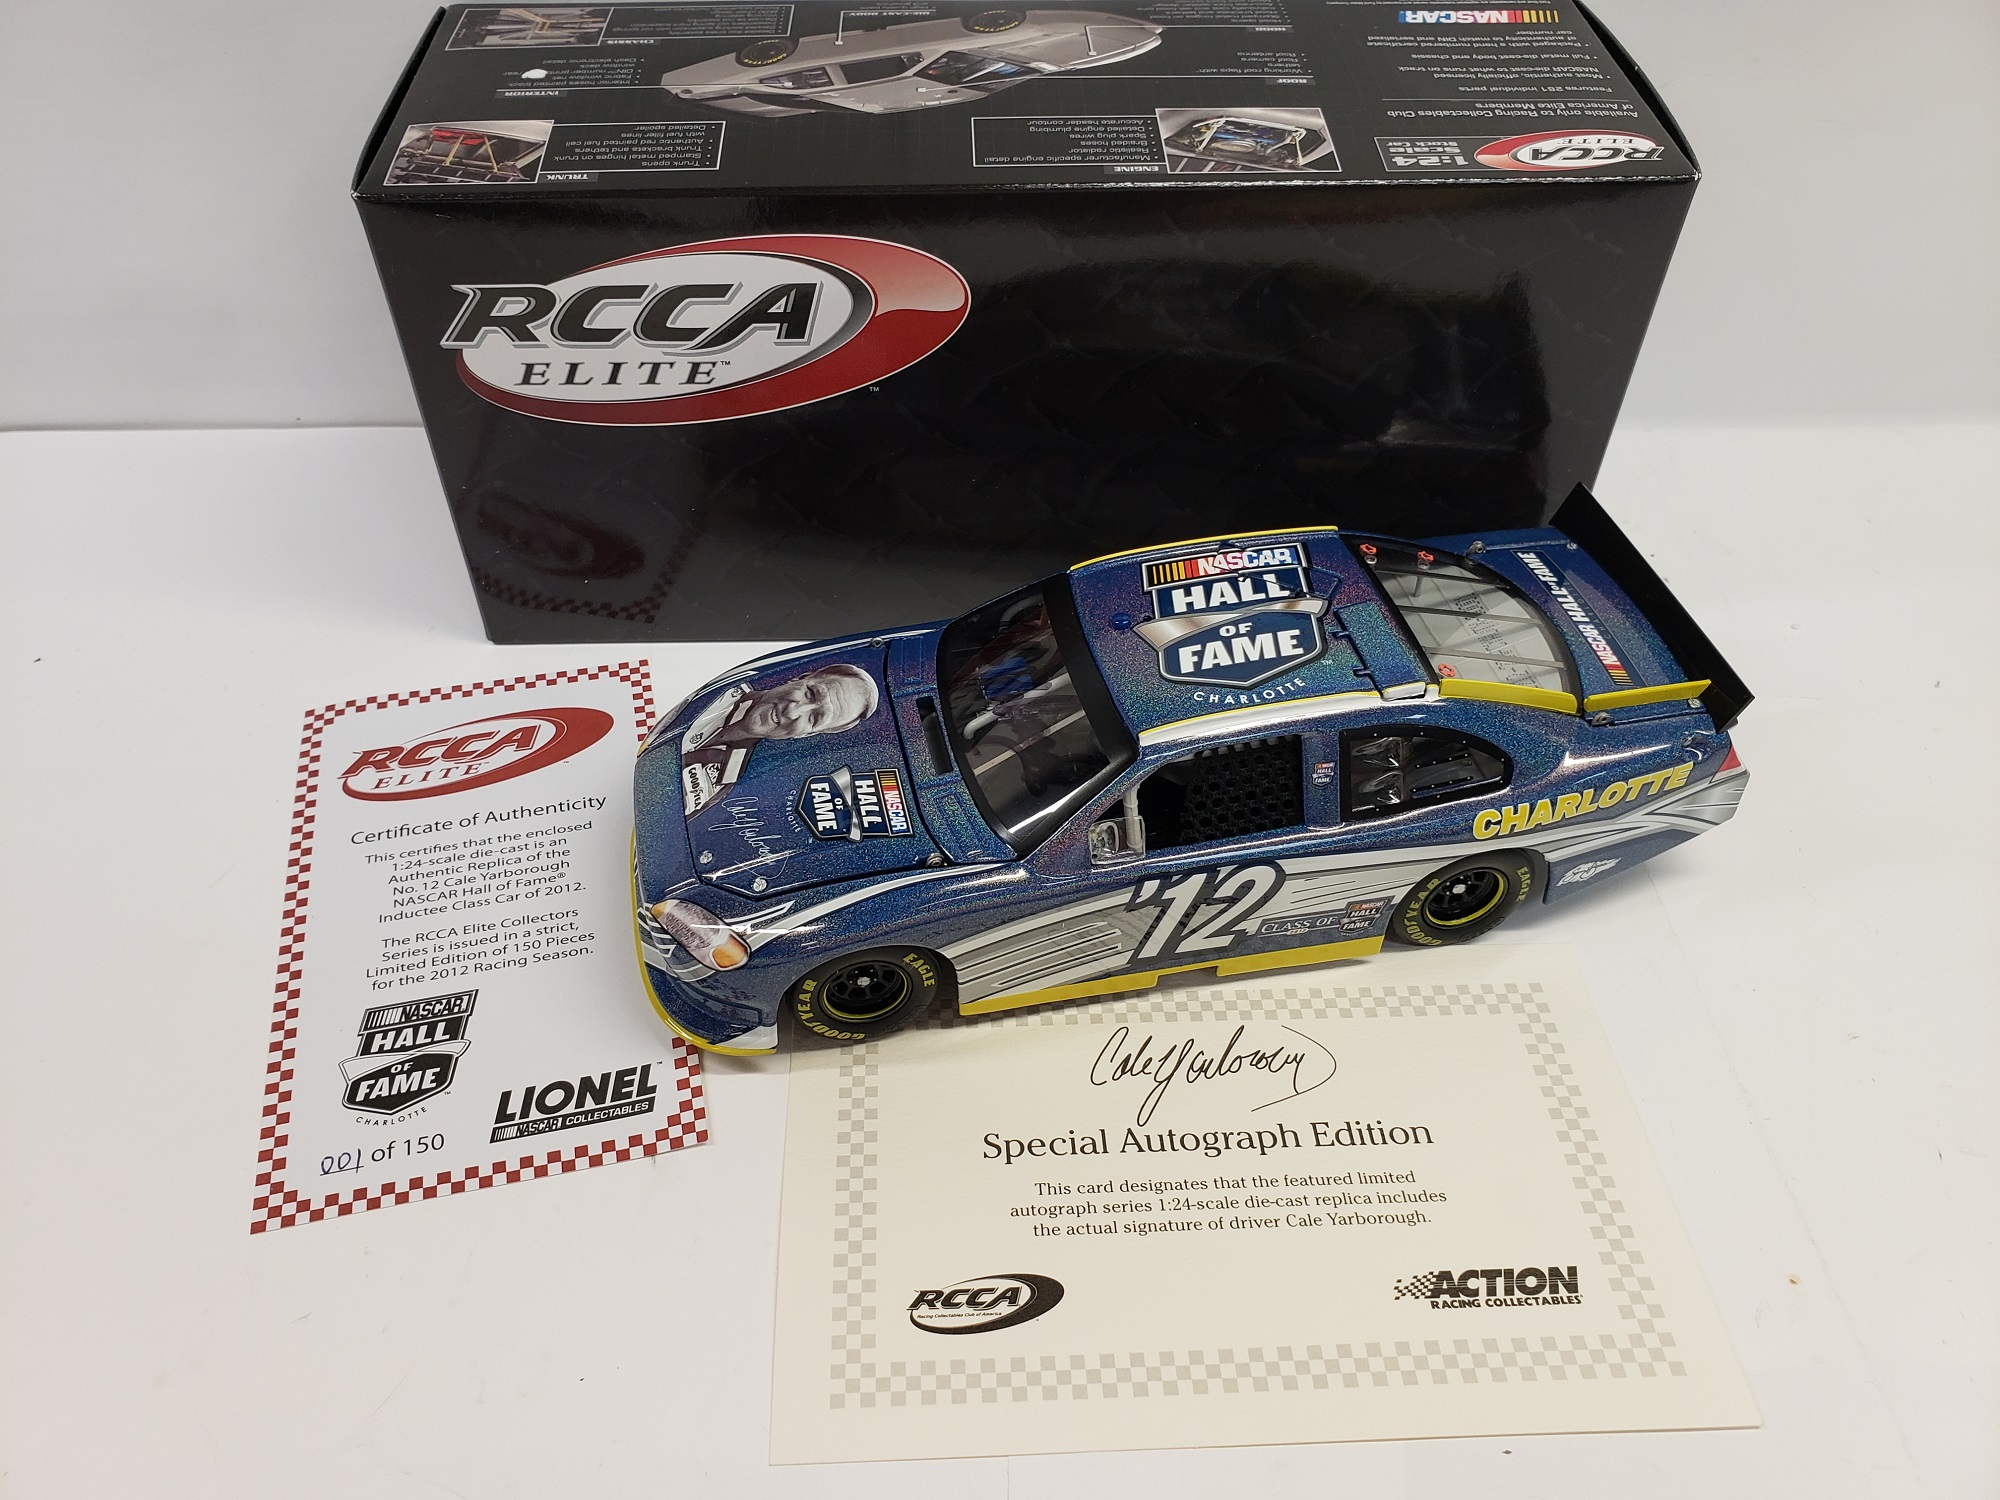 2012 Cale Yarborough NASCAR Hall of Fame Flashcoat Autographed ELITE